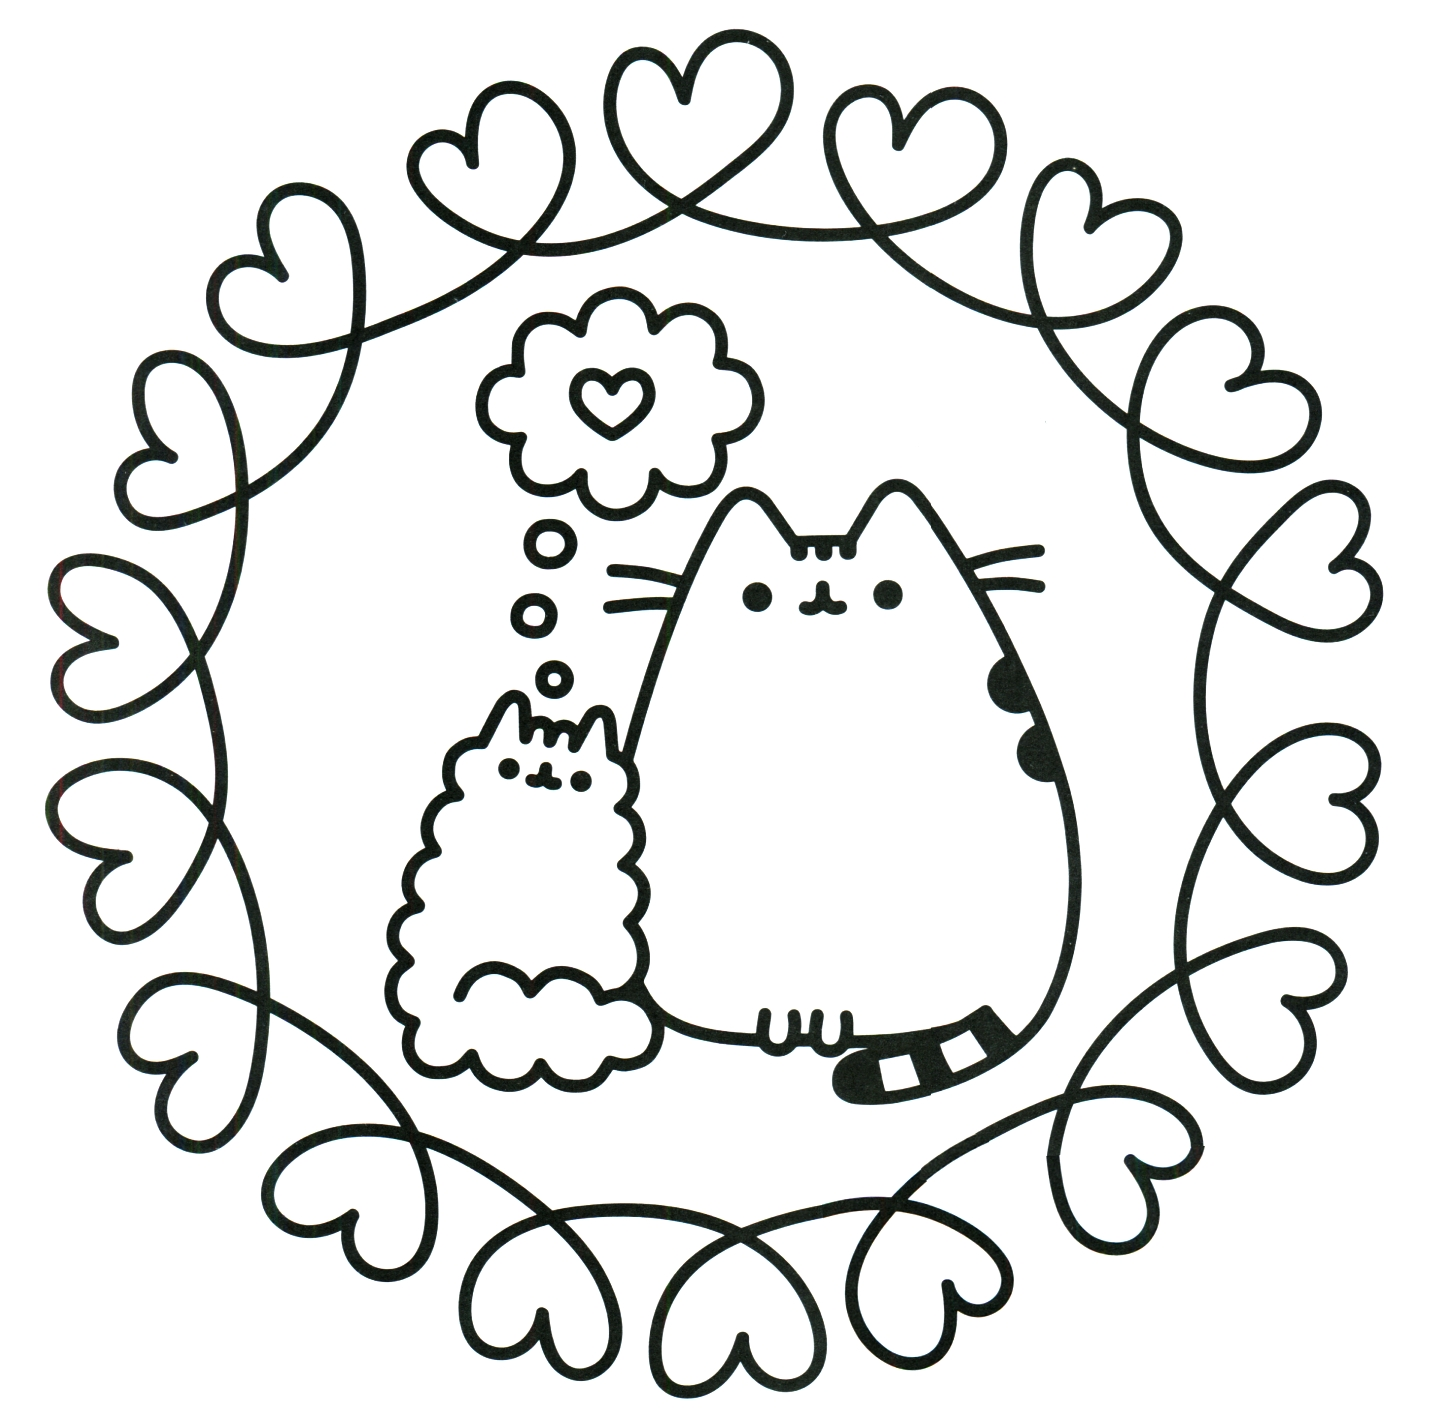 This is an image of Agile Printable Pusheen Coloring Pages